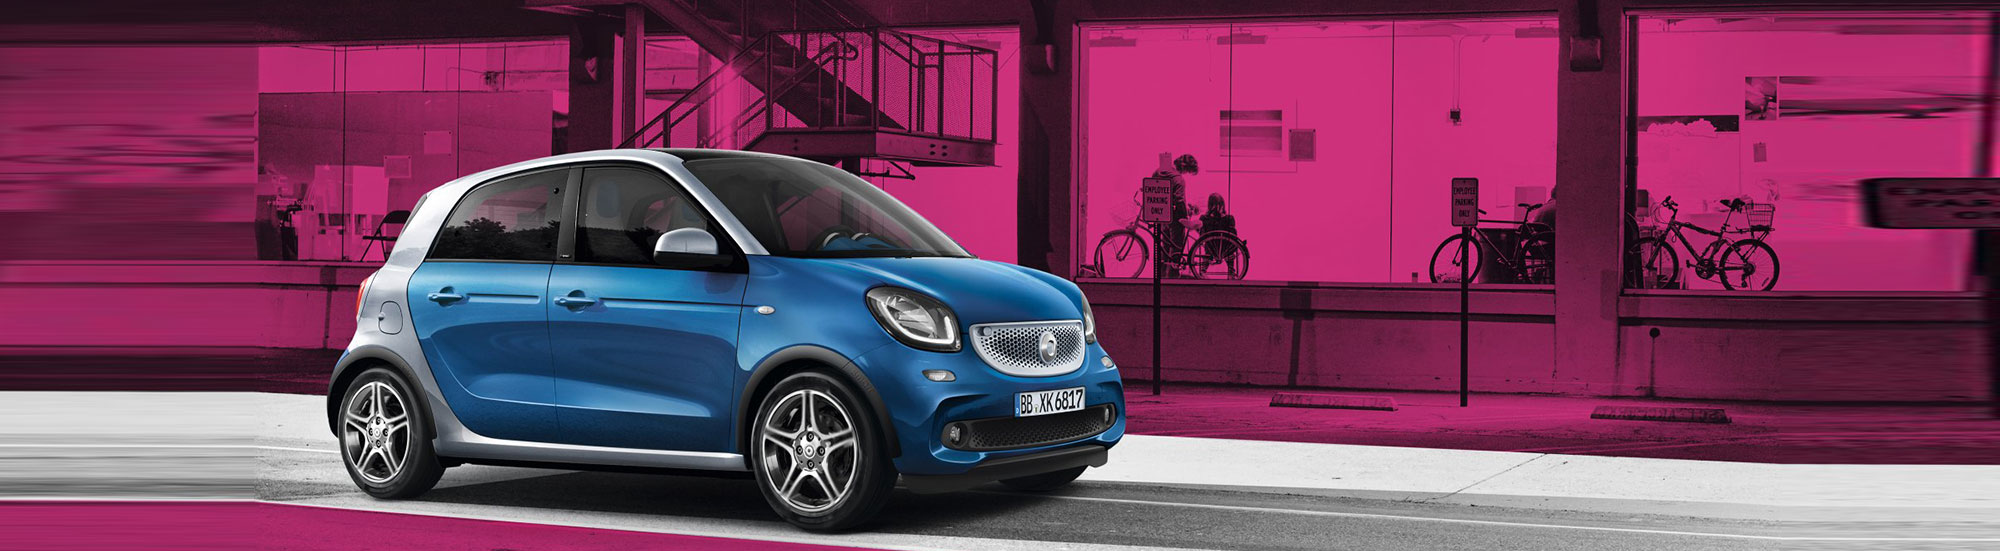 Forfour Campagna